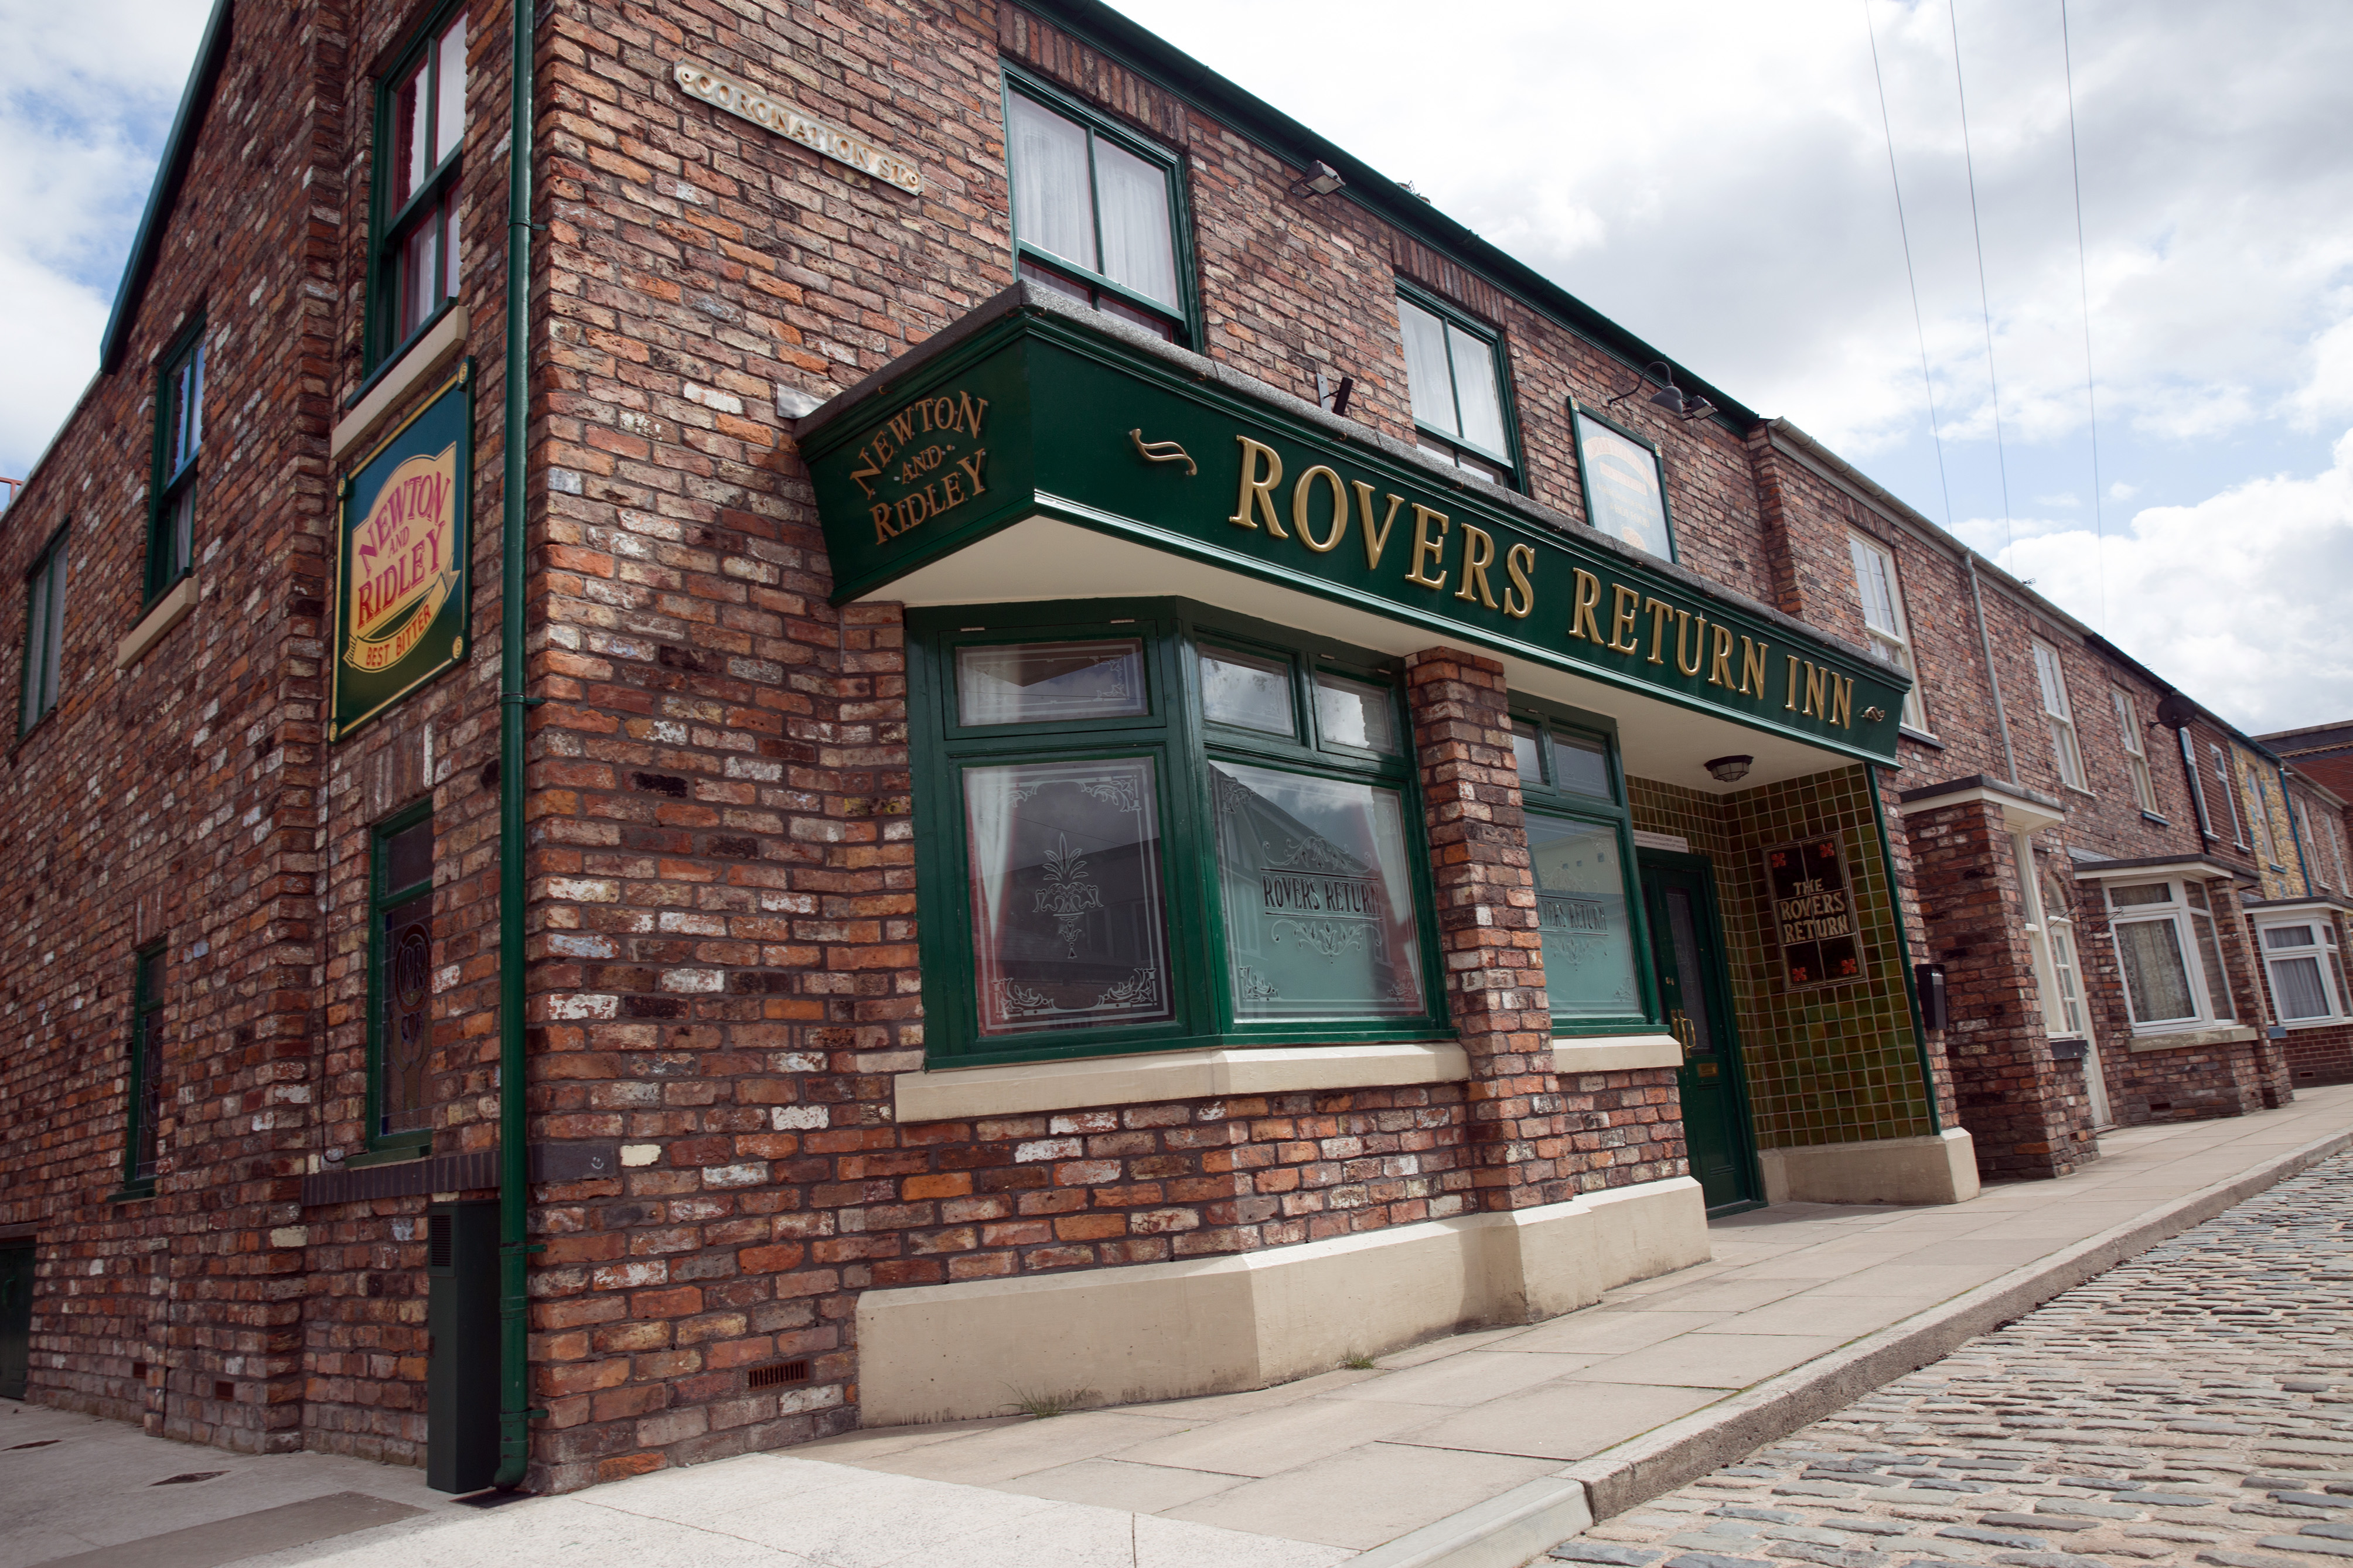 You can visit Coronation Street